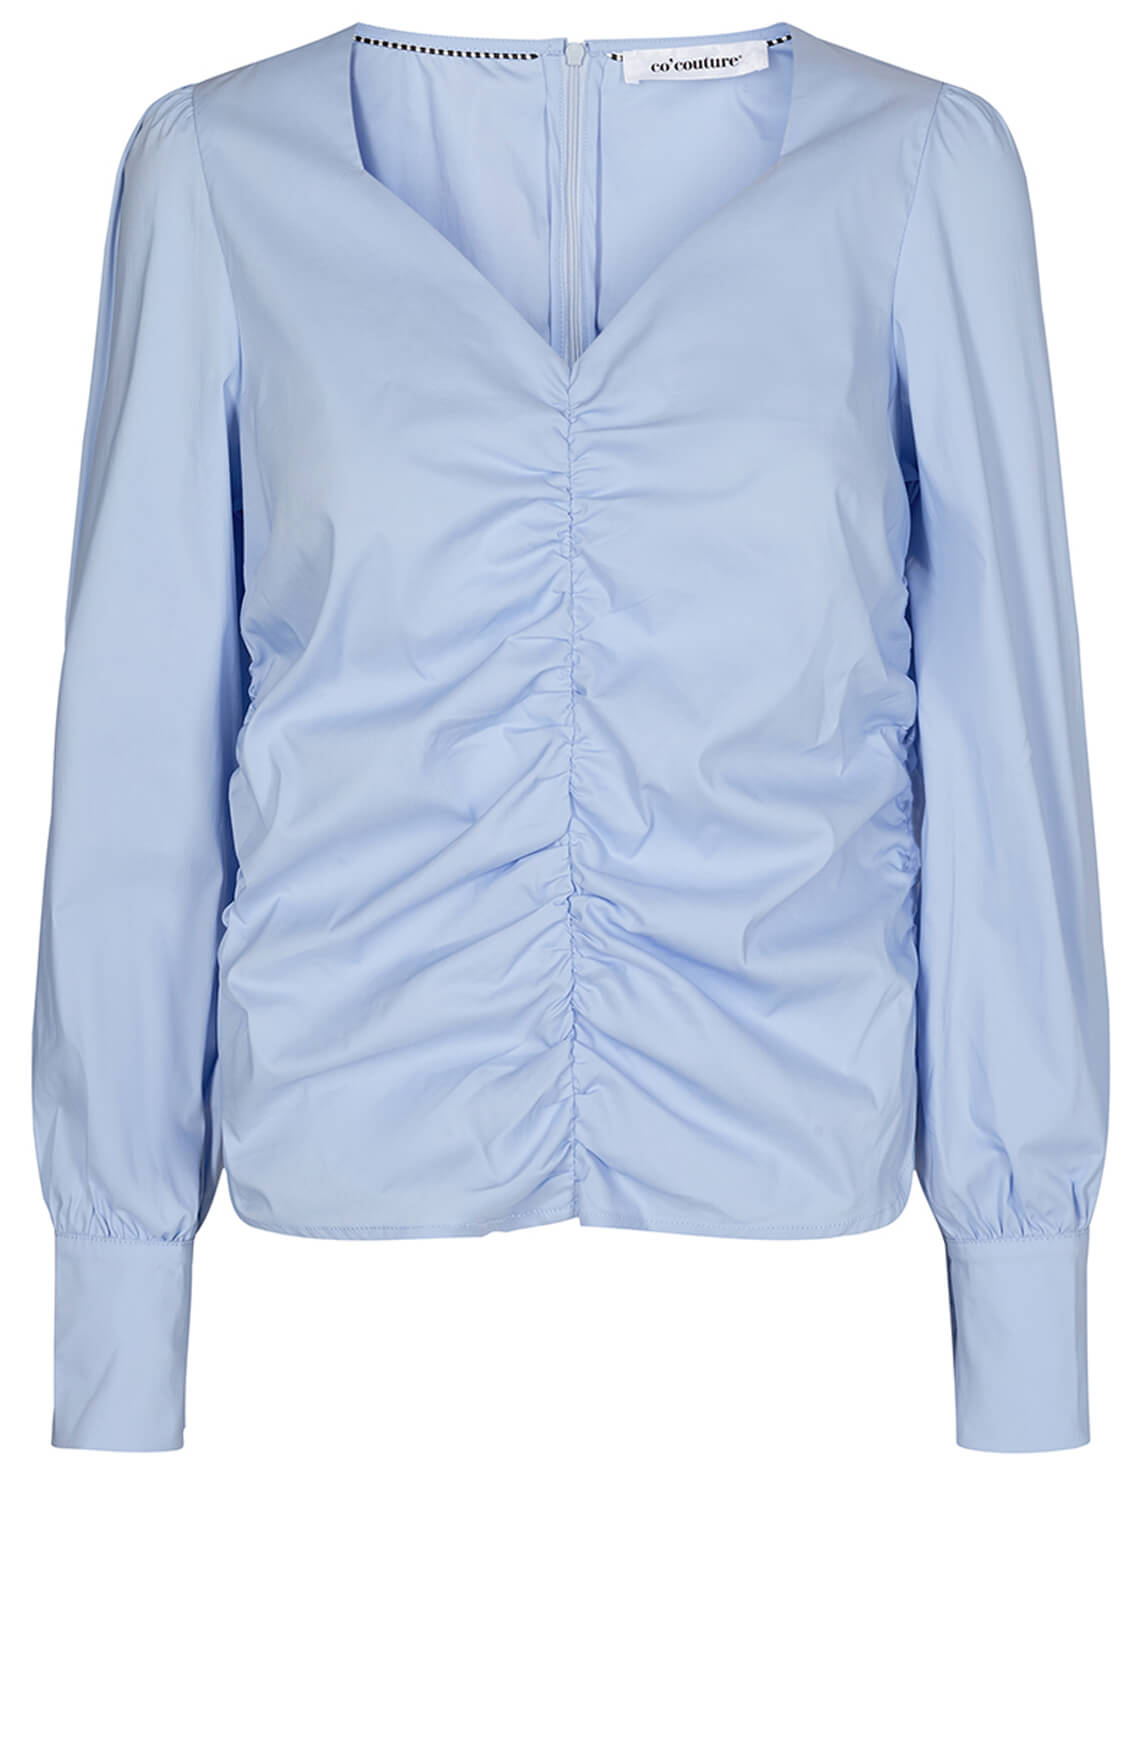 Co Couture Dames Sandy poplin blouse Blauw